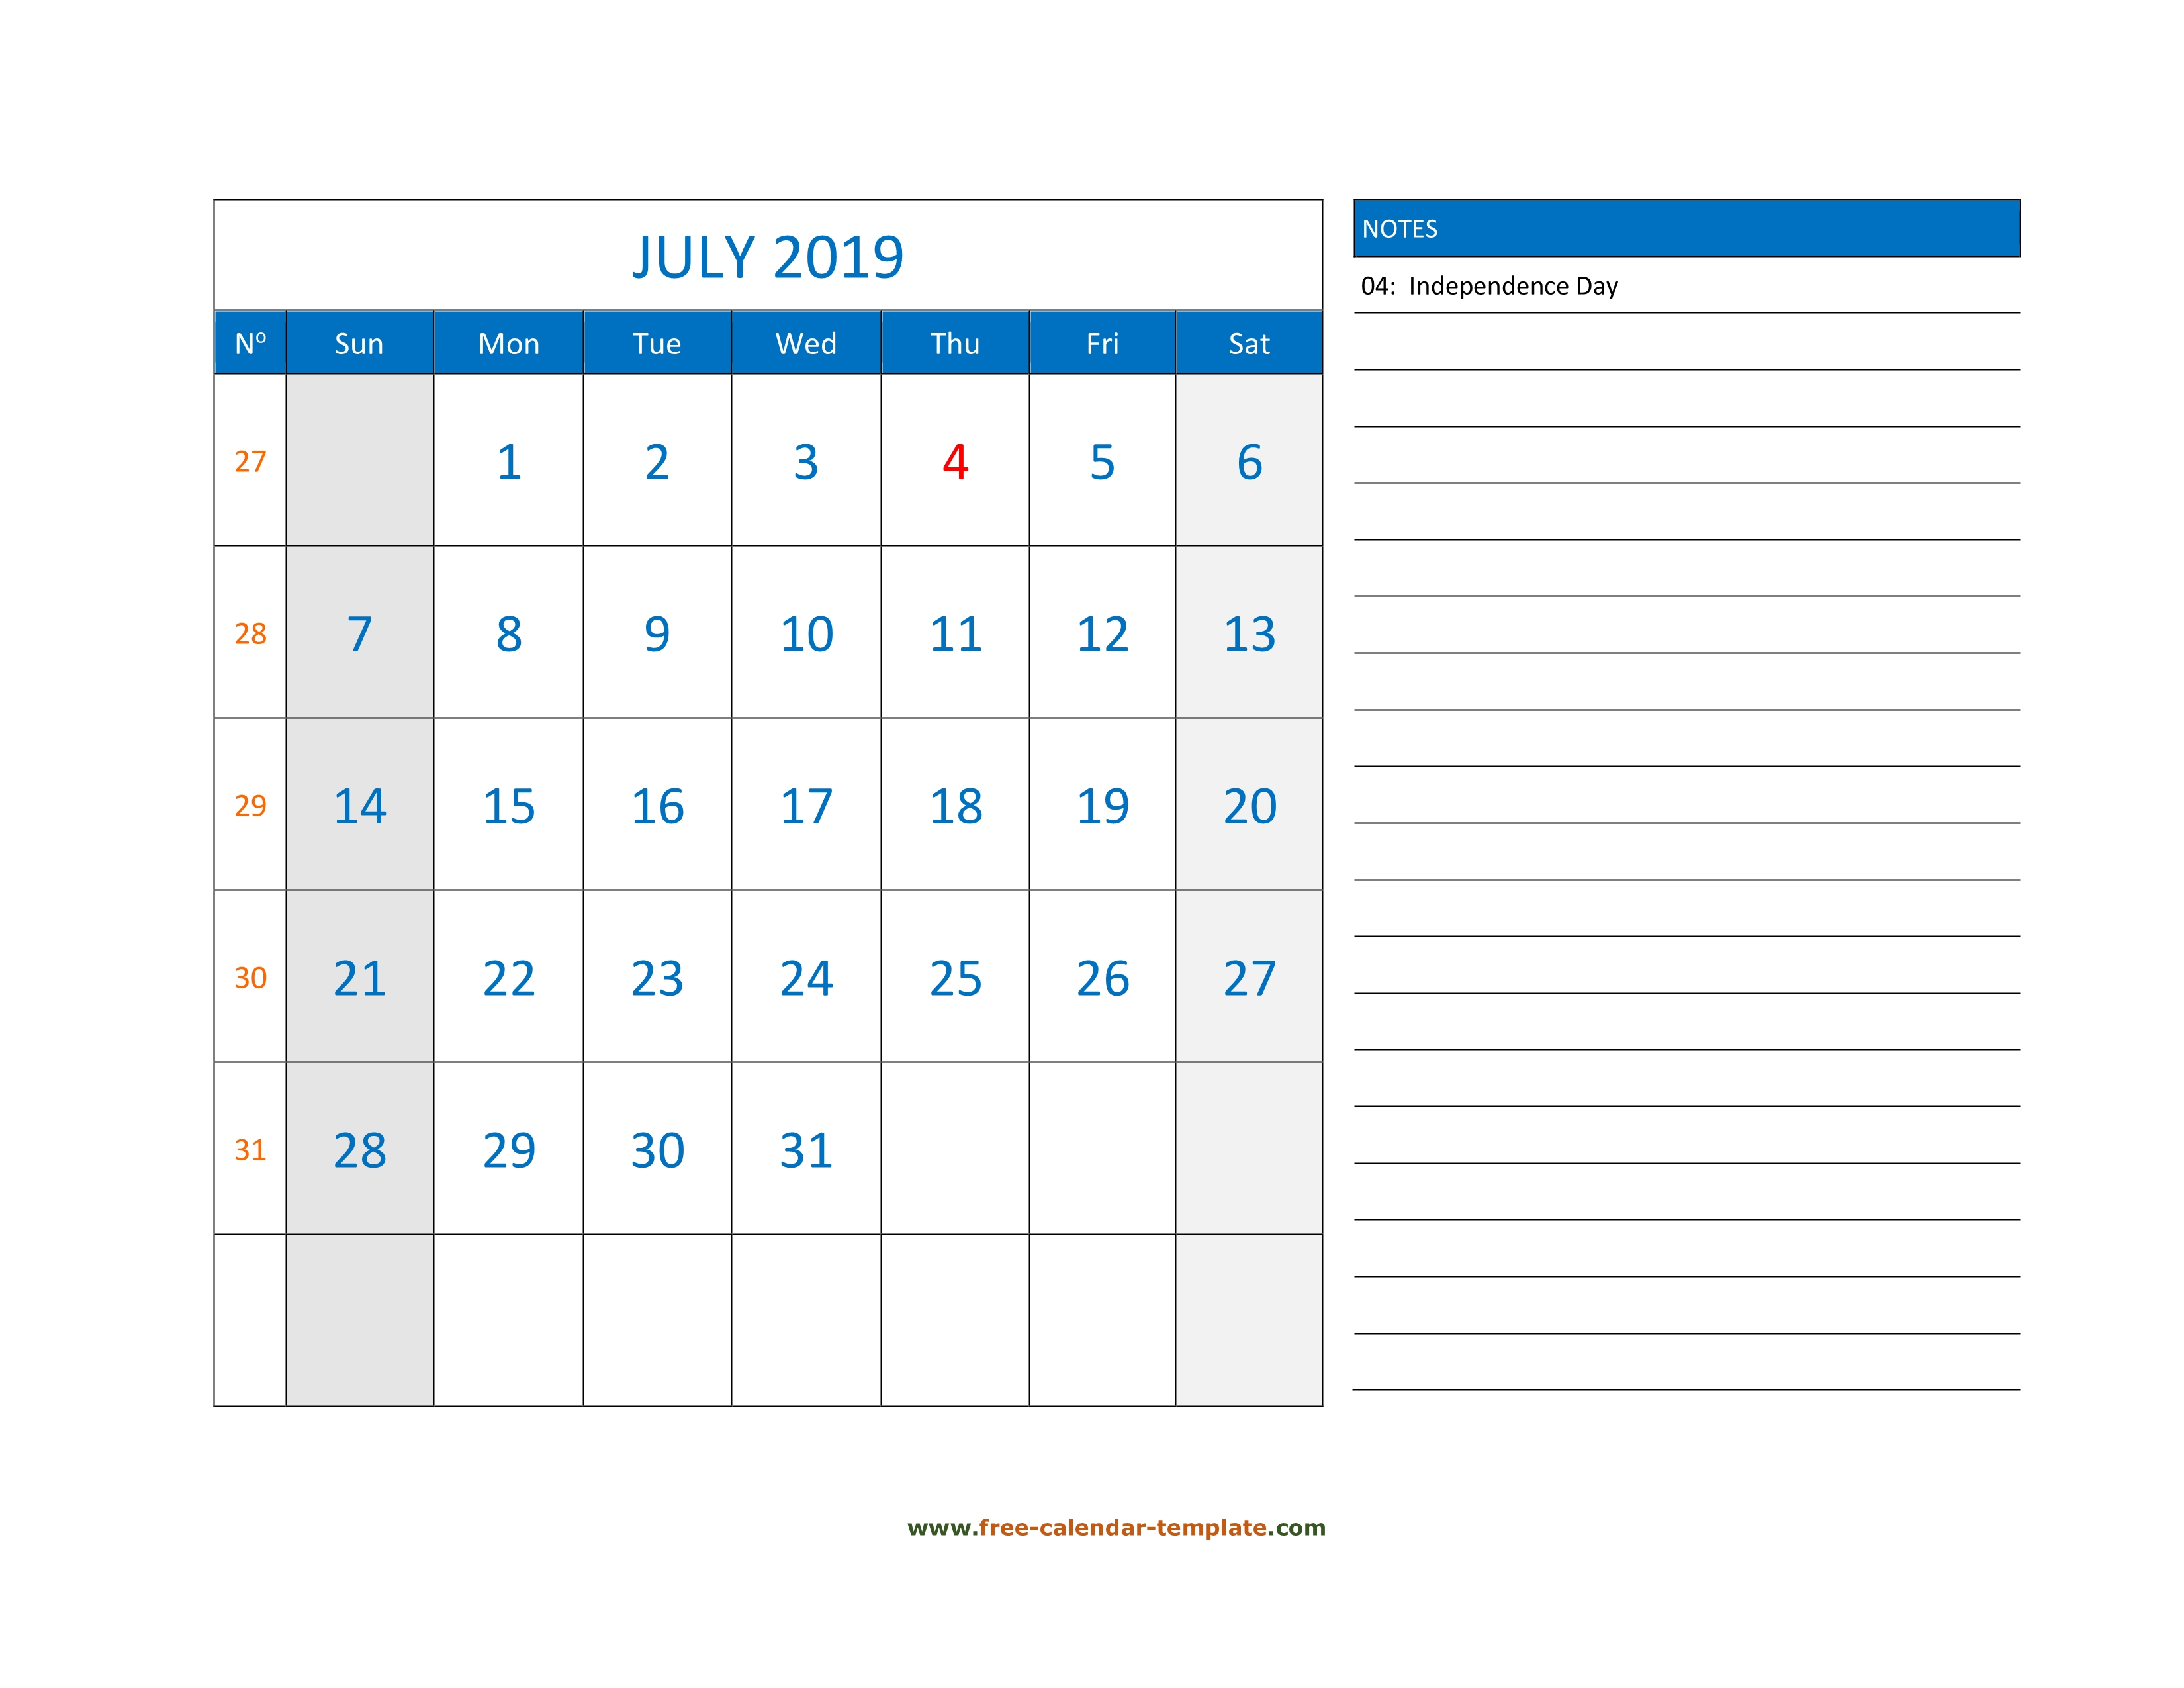 July Calendar 2019 Grid Lines For Holidays And Notes